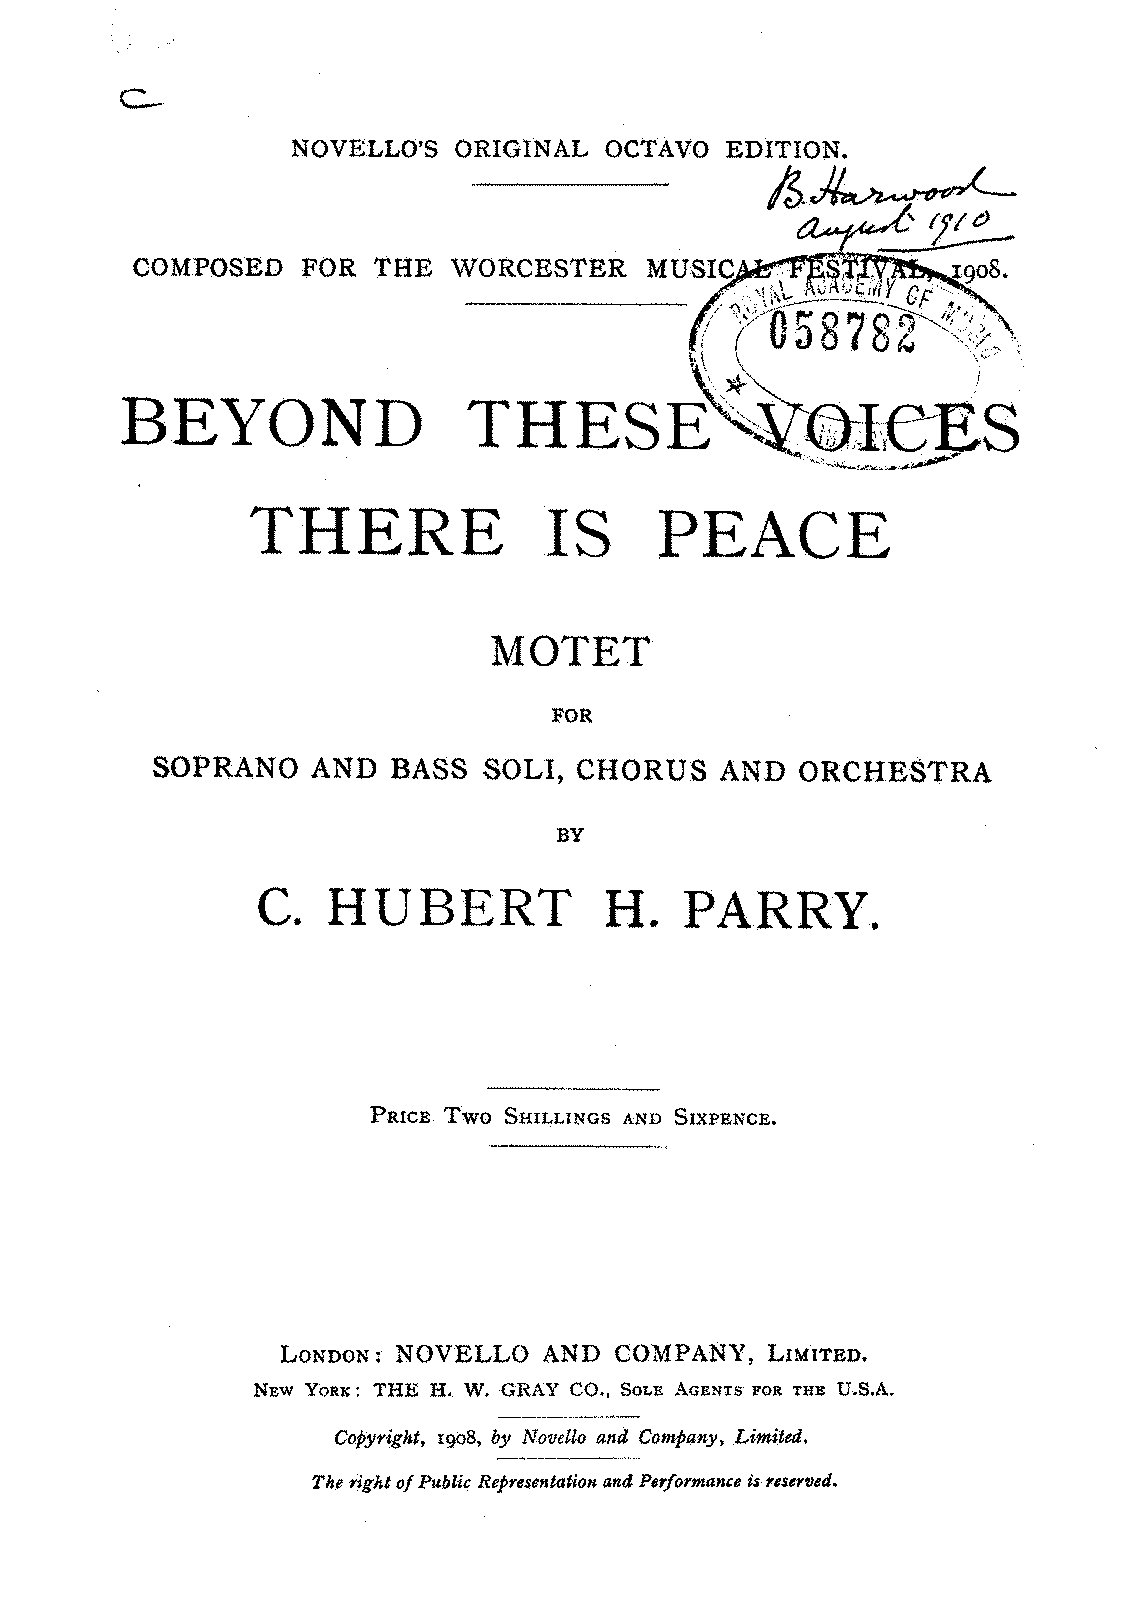 PMLP316203-Parry - Beyond these voices there is peace, Title and prelims.pdf